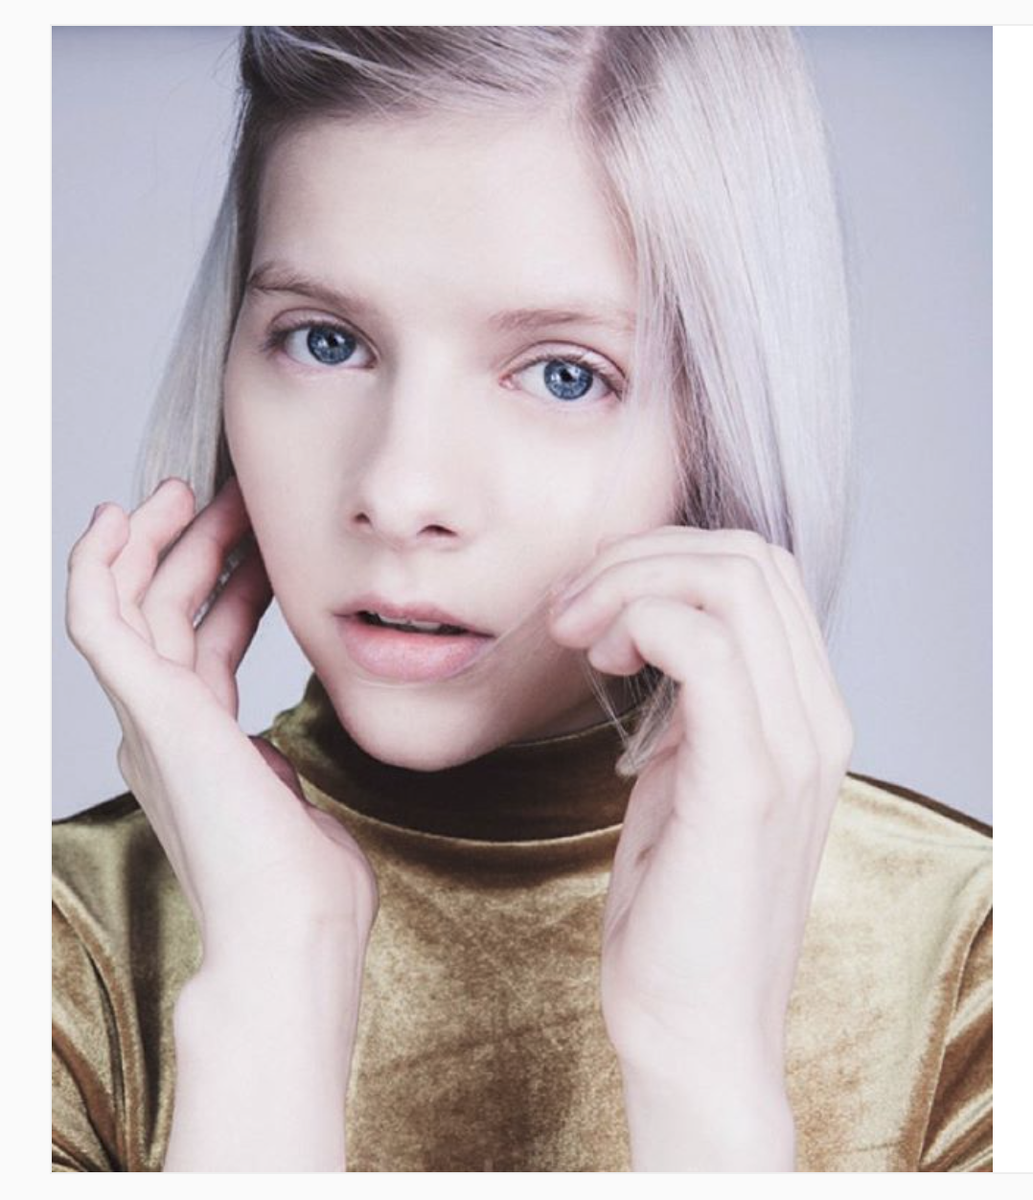 Pic of @AURORAmusic from a session I did for @NotionMagazine. 1 of my favourite shoots of the year!#awesome #talent https://t.co/6sdaebDsFc